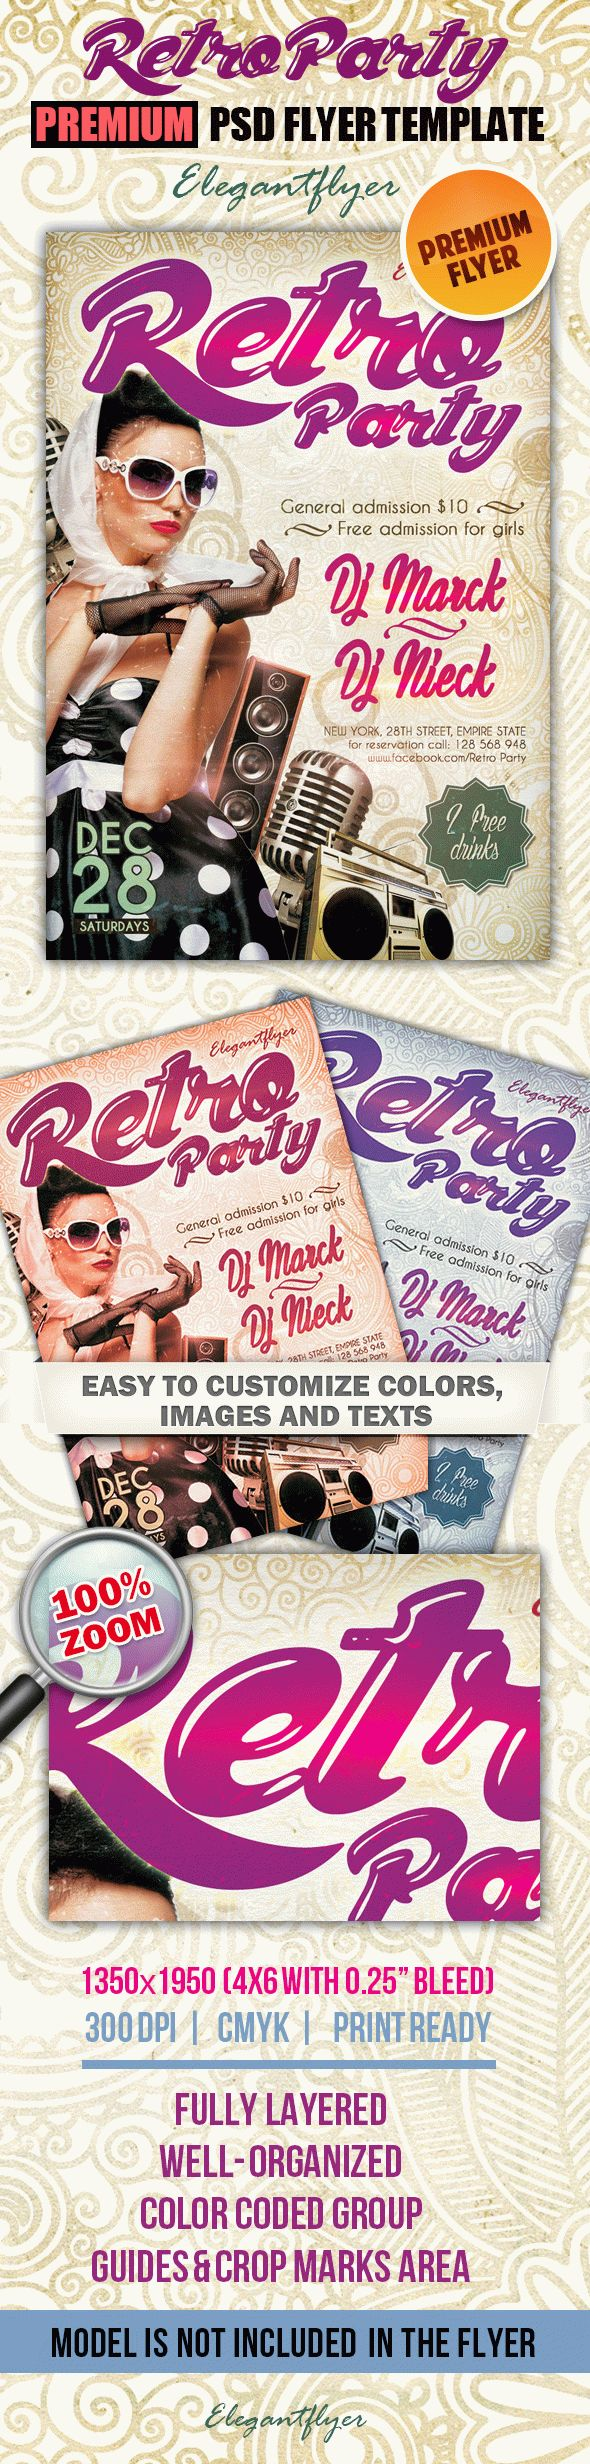 Flyer Template for Retro Party Club